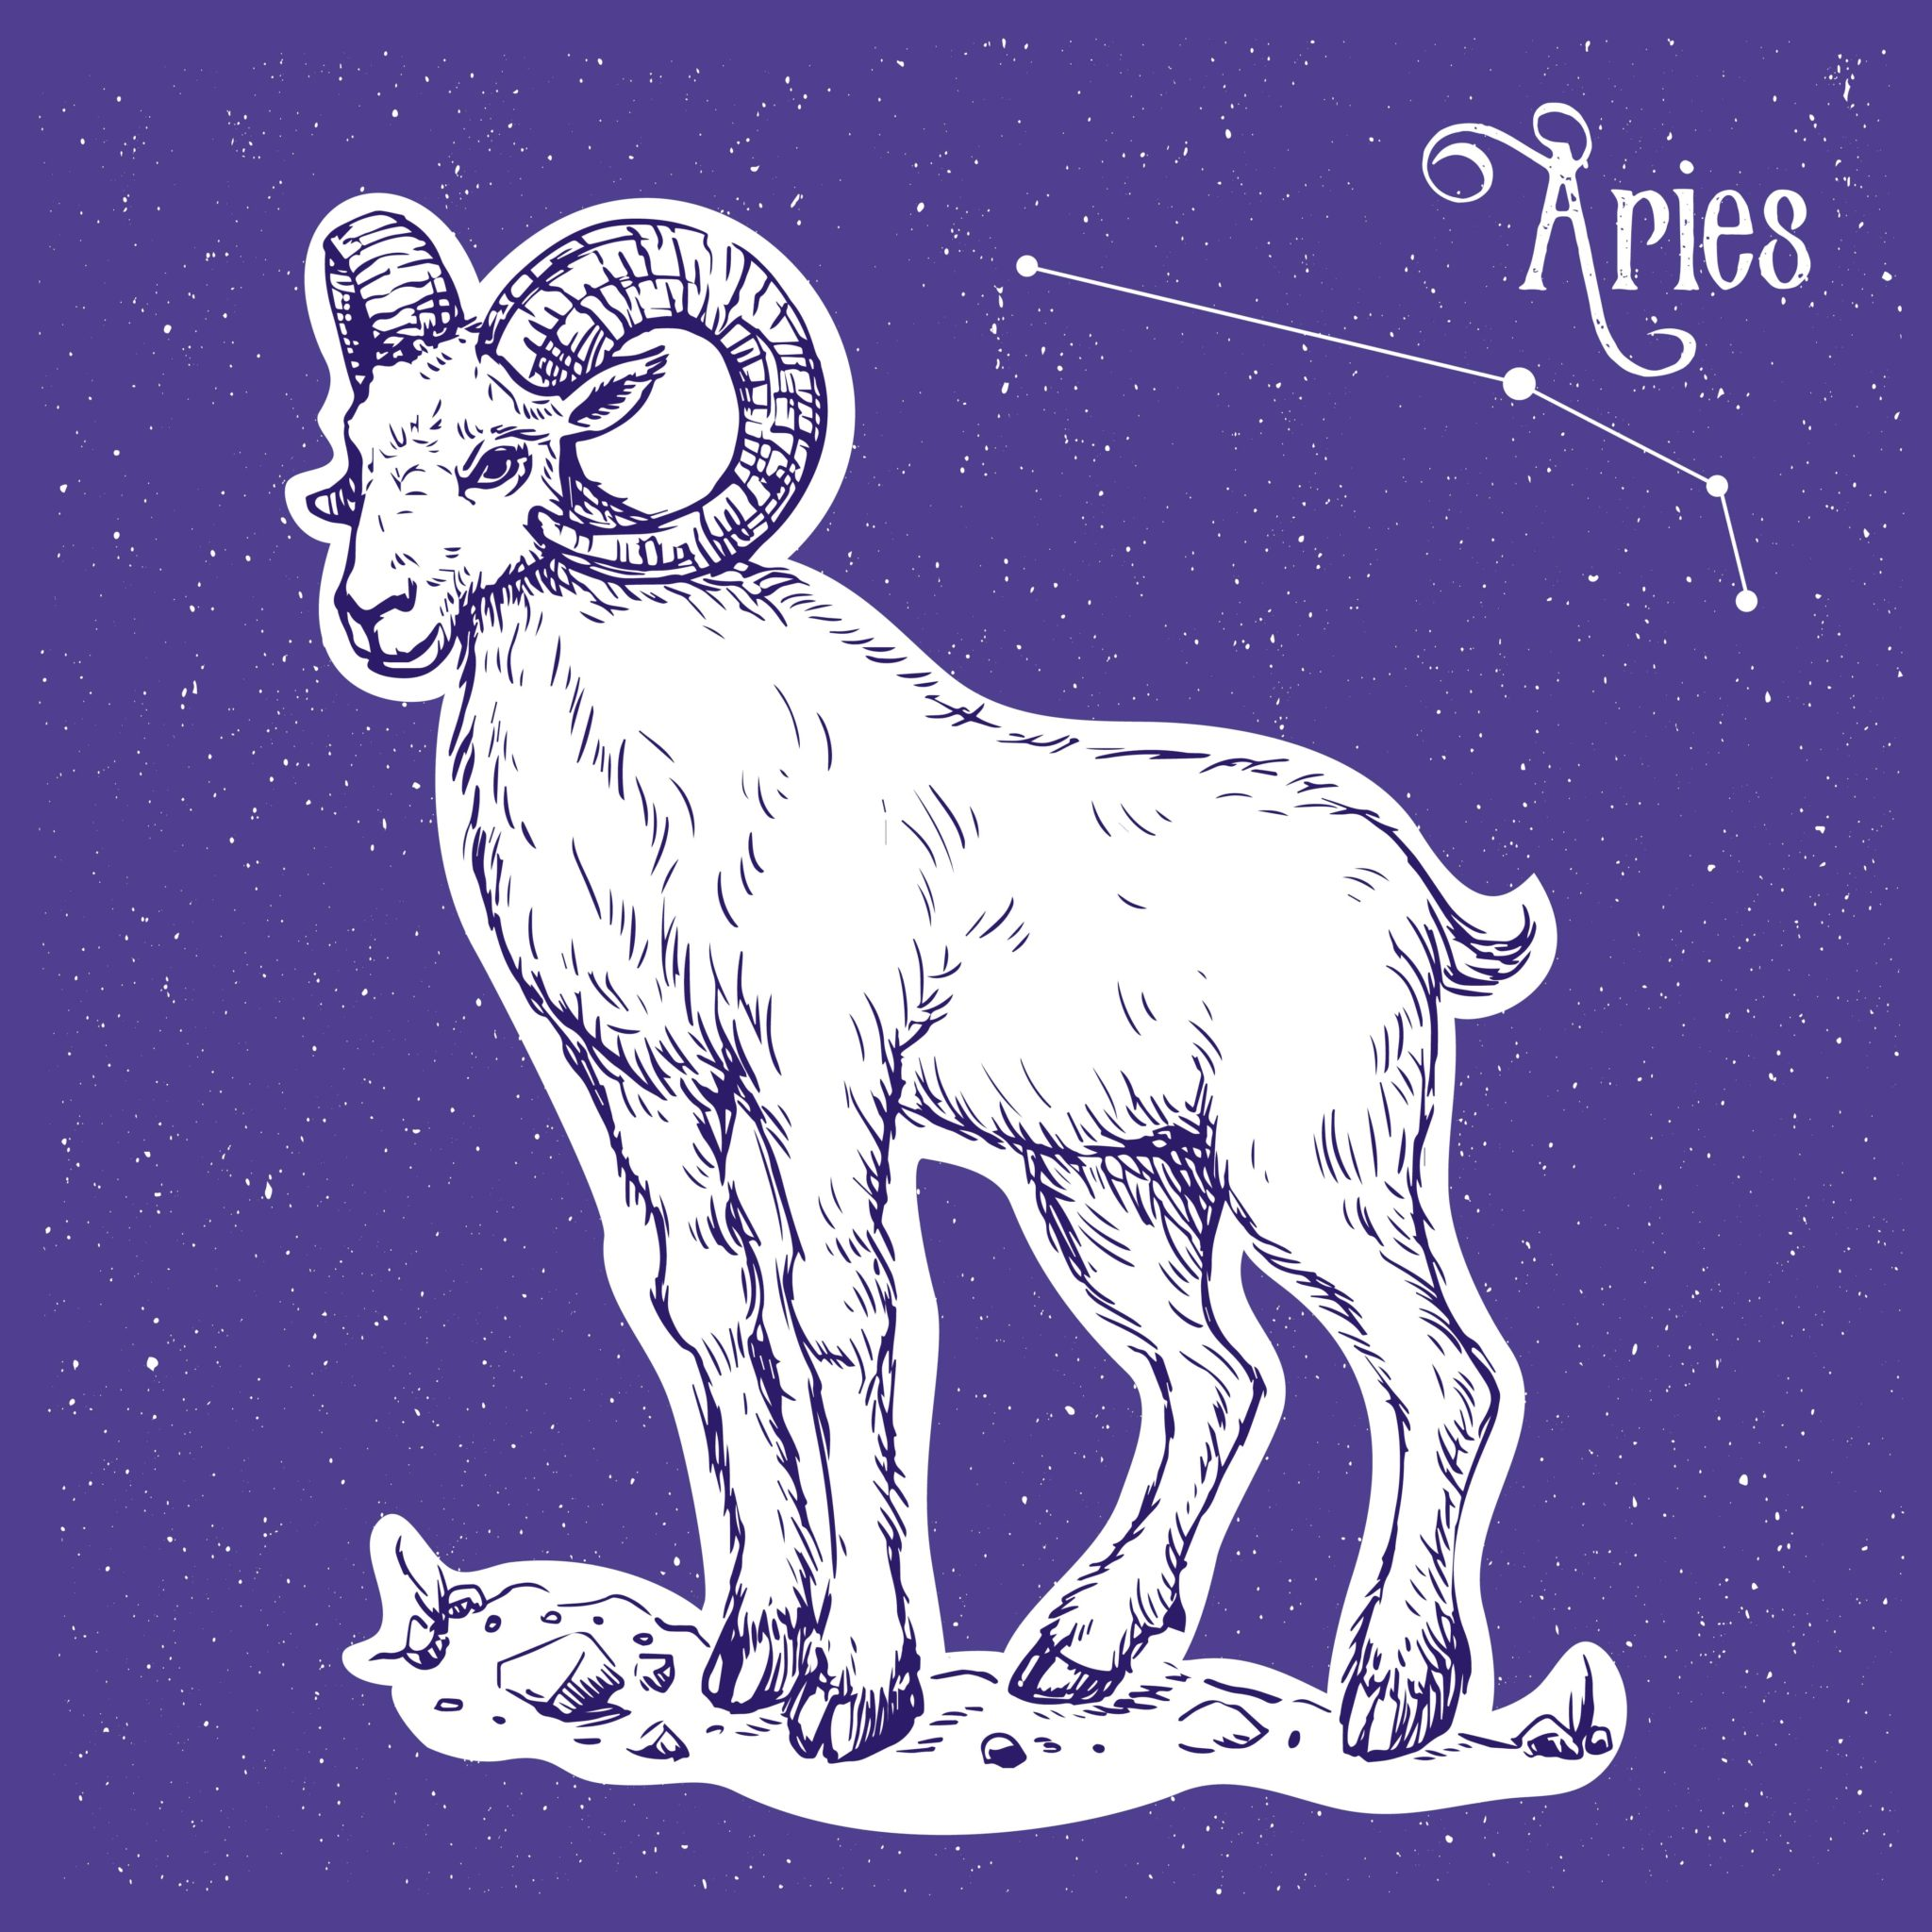 10 Reasons Aries is the Worst Astrological Sign